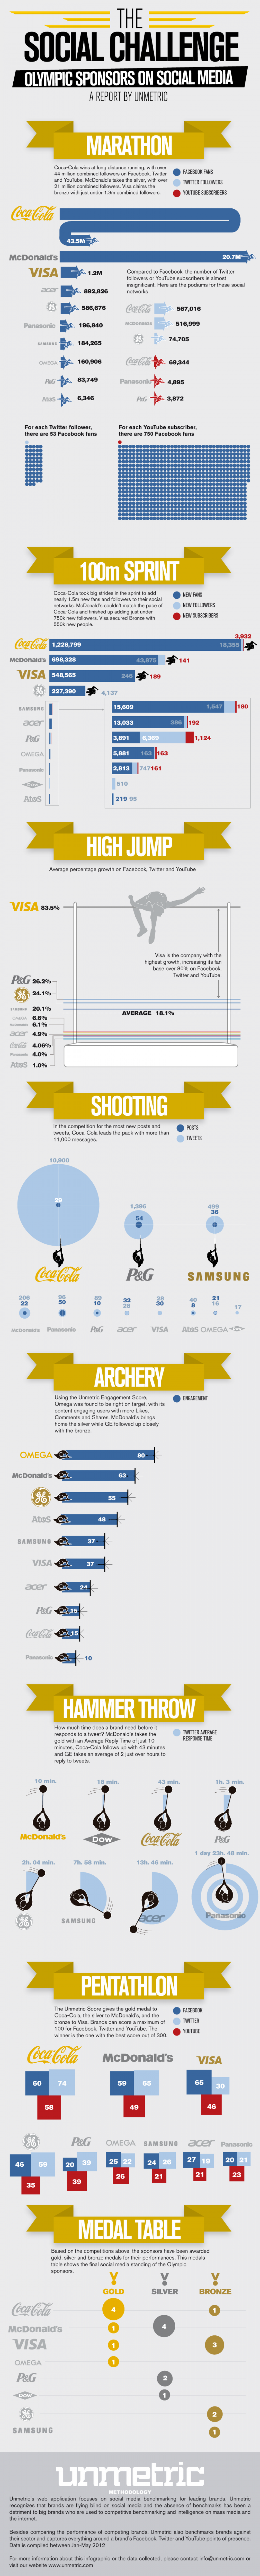 The Social Challenge: Olympic Sponsors on Social Media Infographic